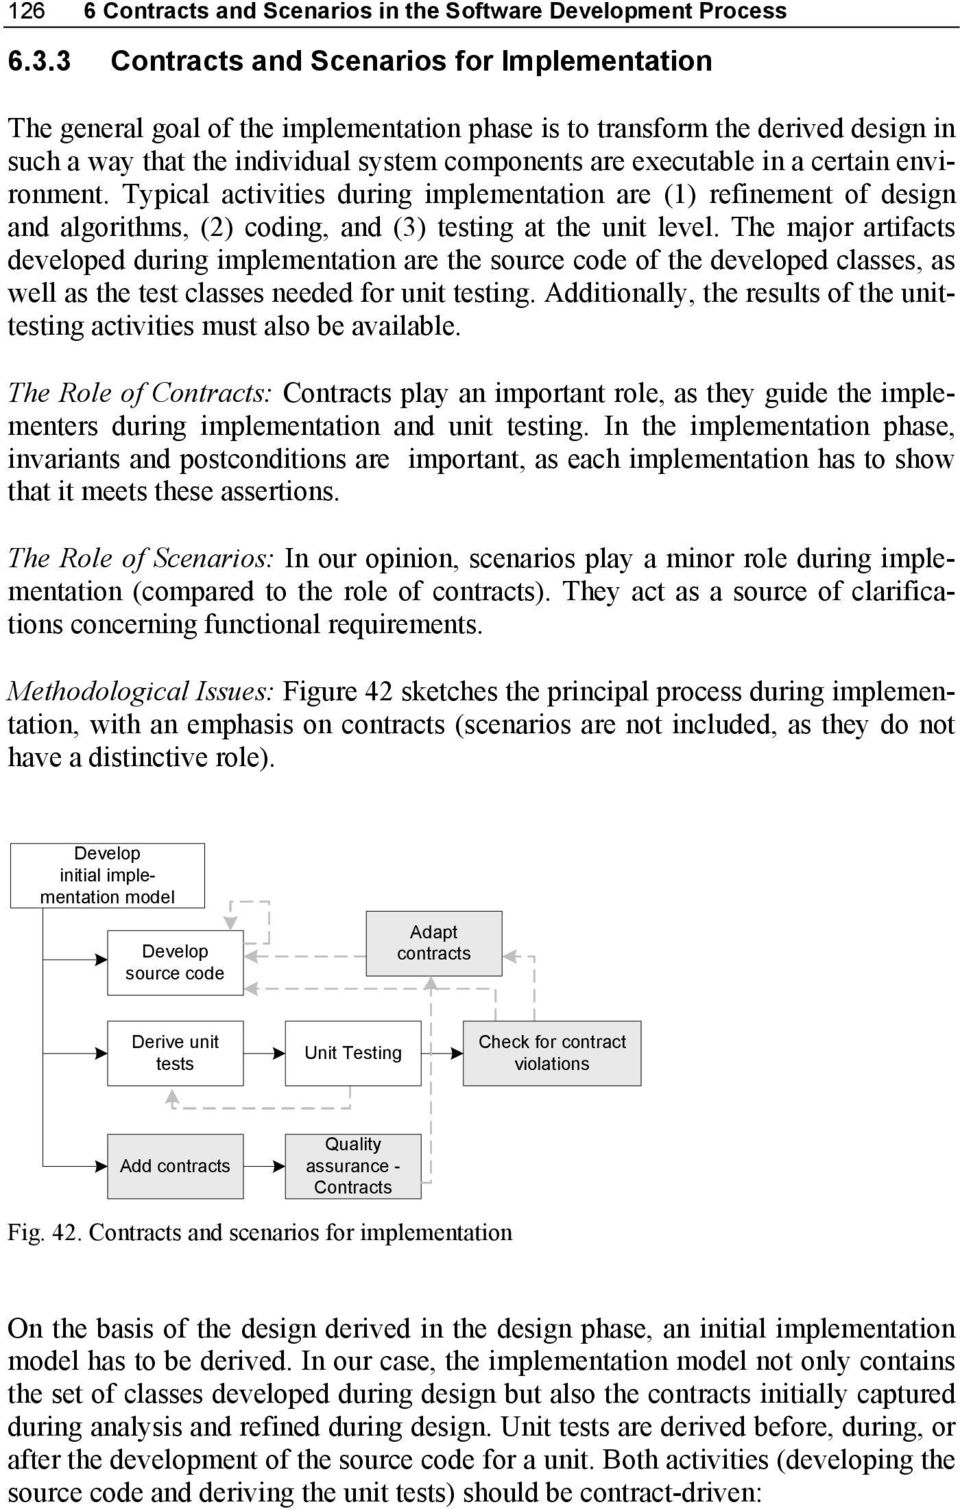 certain environment. Typical activities during implementation are (1) refinement of design and algorithms, (2) coding, and (3) testing at the unit level.